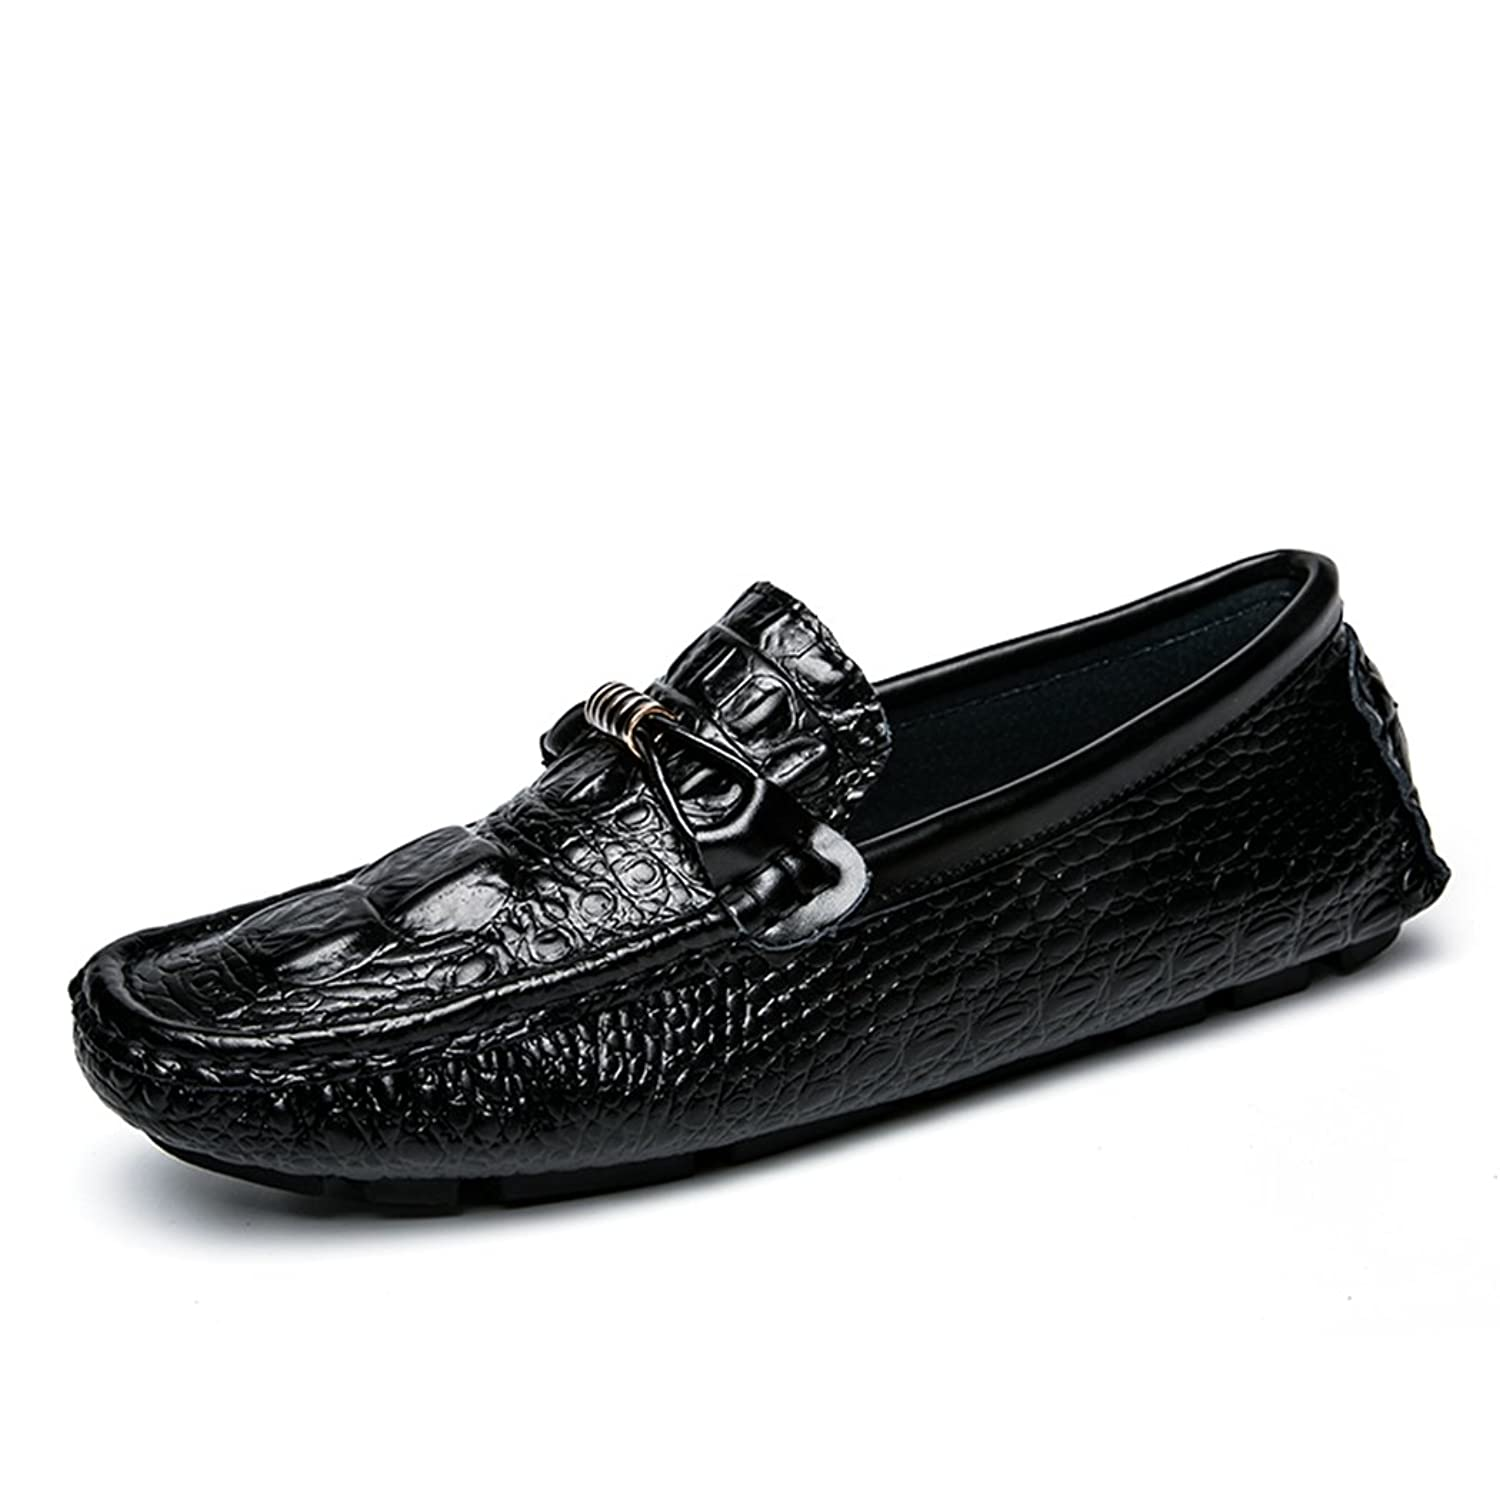 Men's Loafers Casual Slip Ons Driving Office Work School Shoes Soft Leather Flats Black US8.5